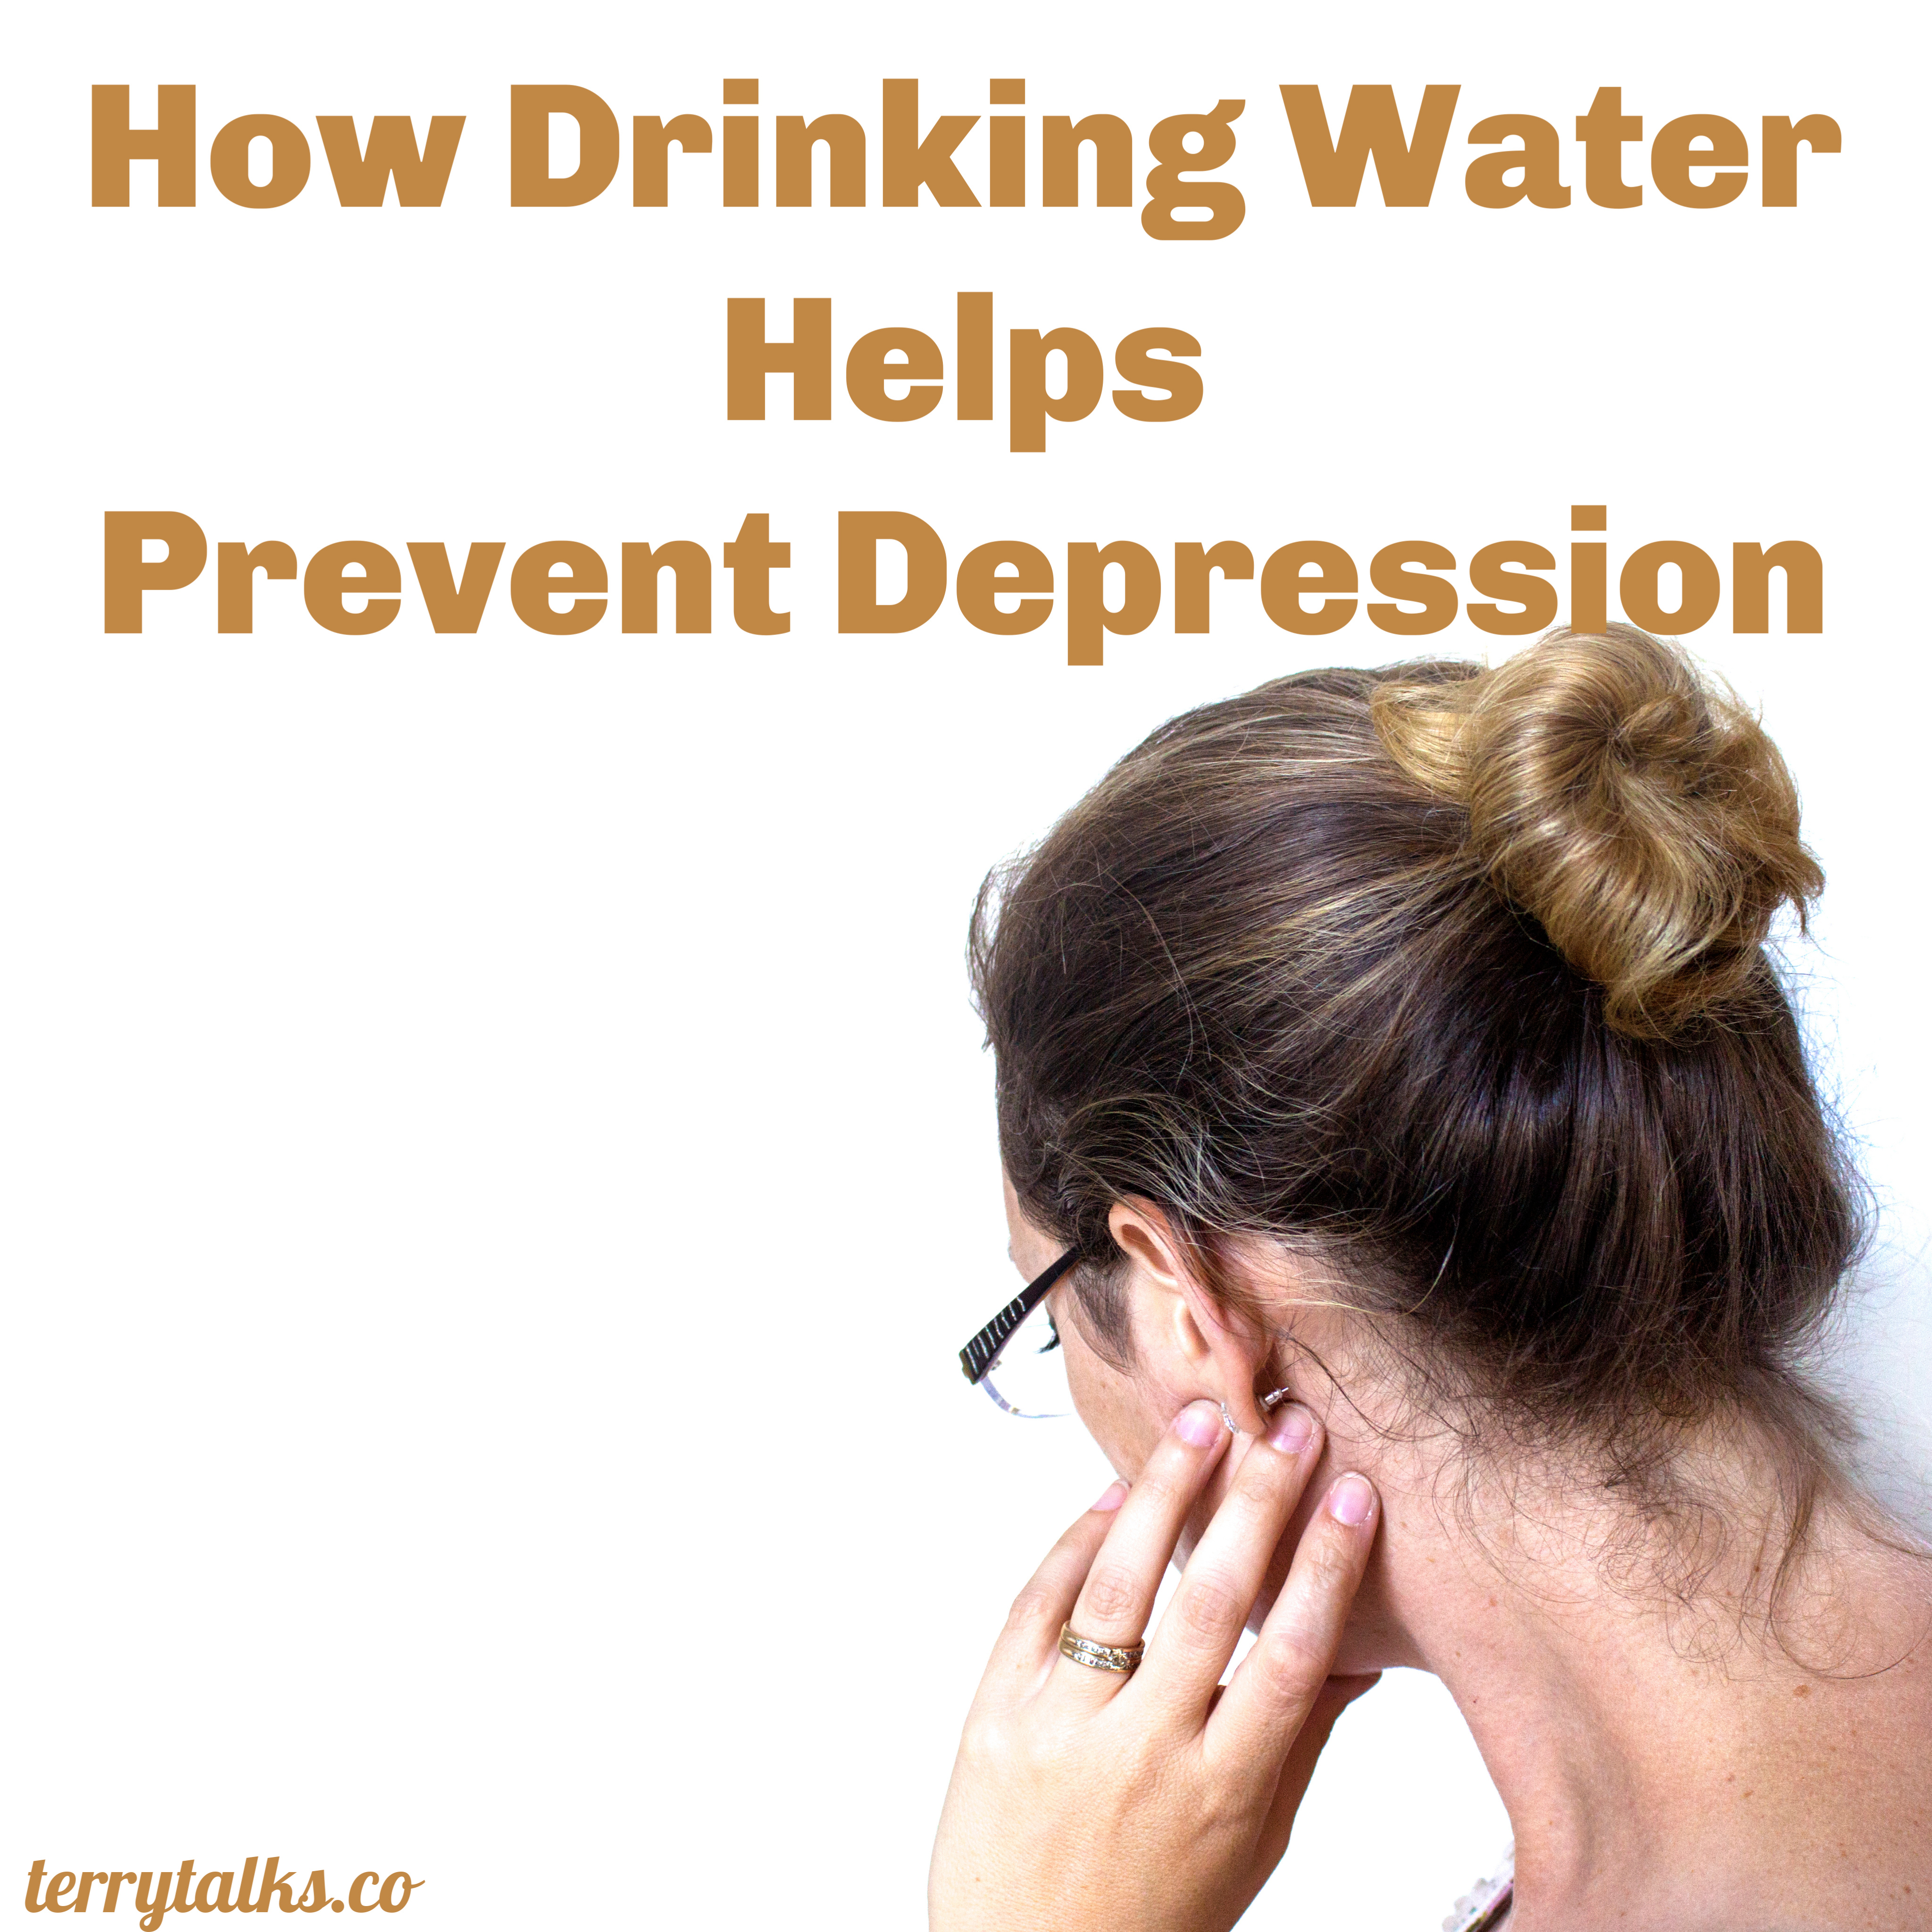 How Drinking Water Helps Prevent Depression